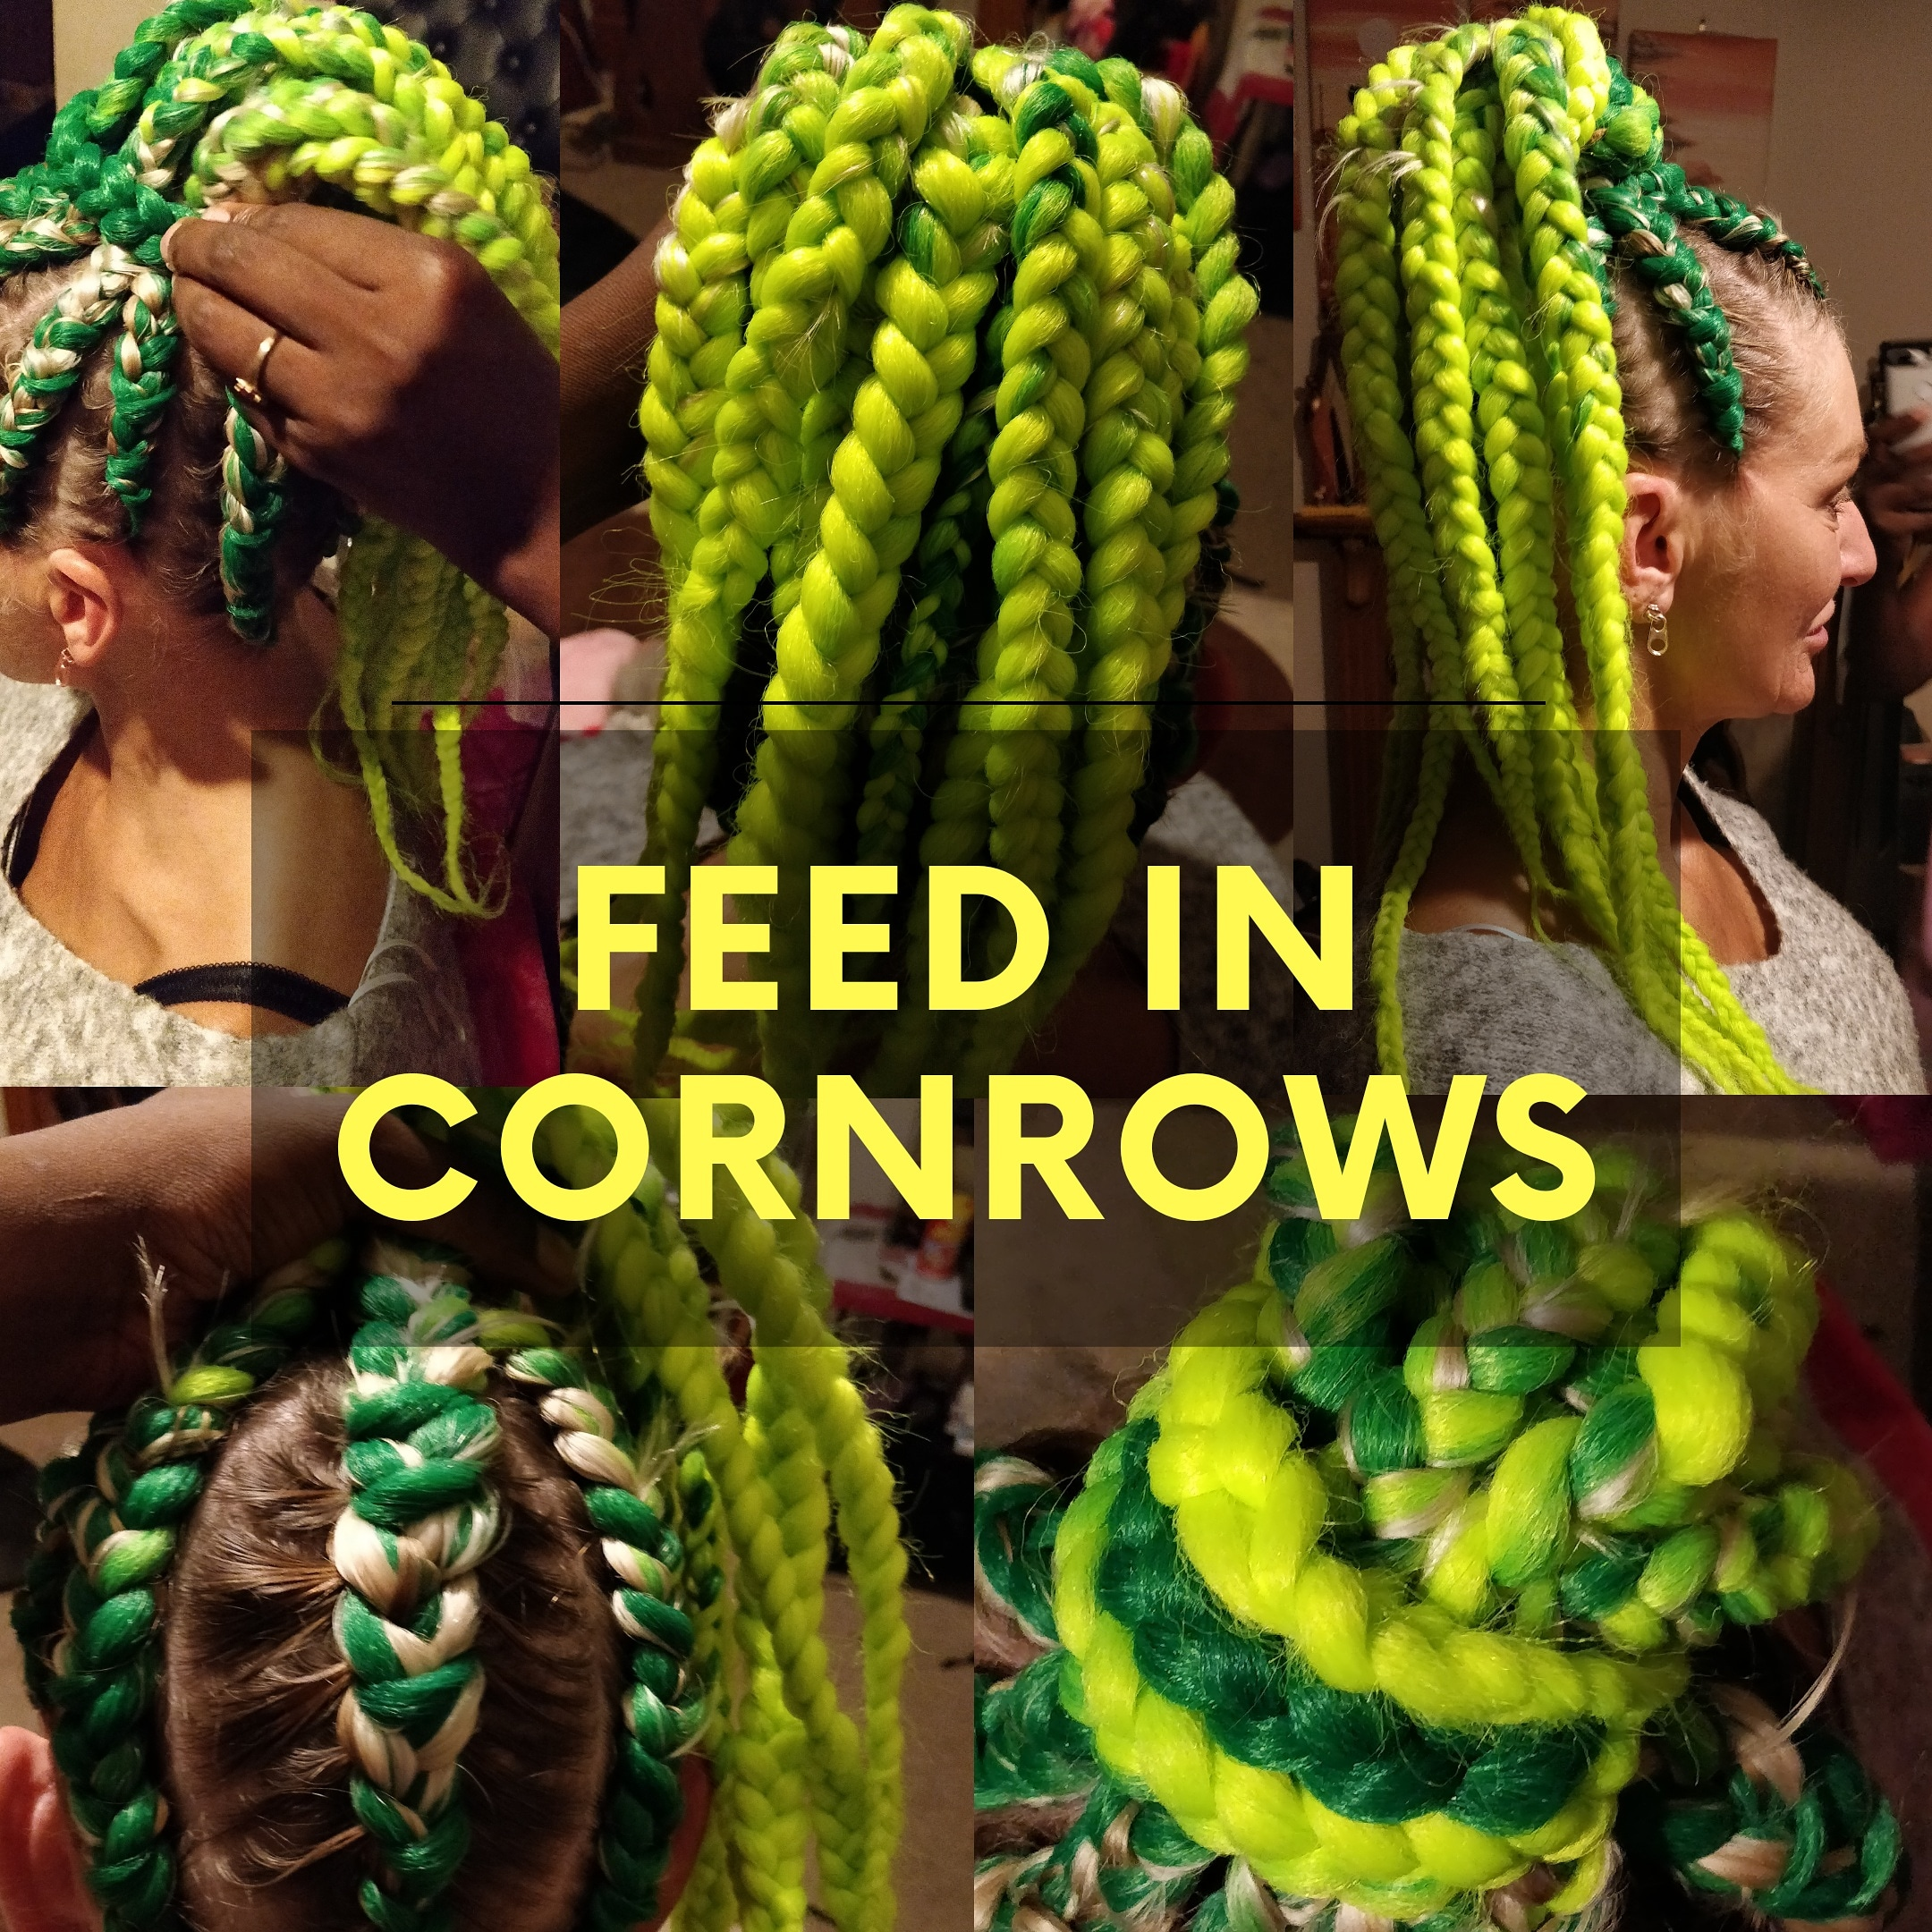 men and lady cornrows. Feedin style shown in the photo